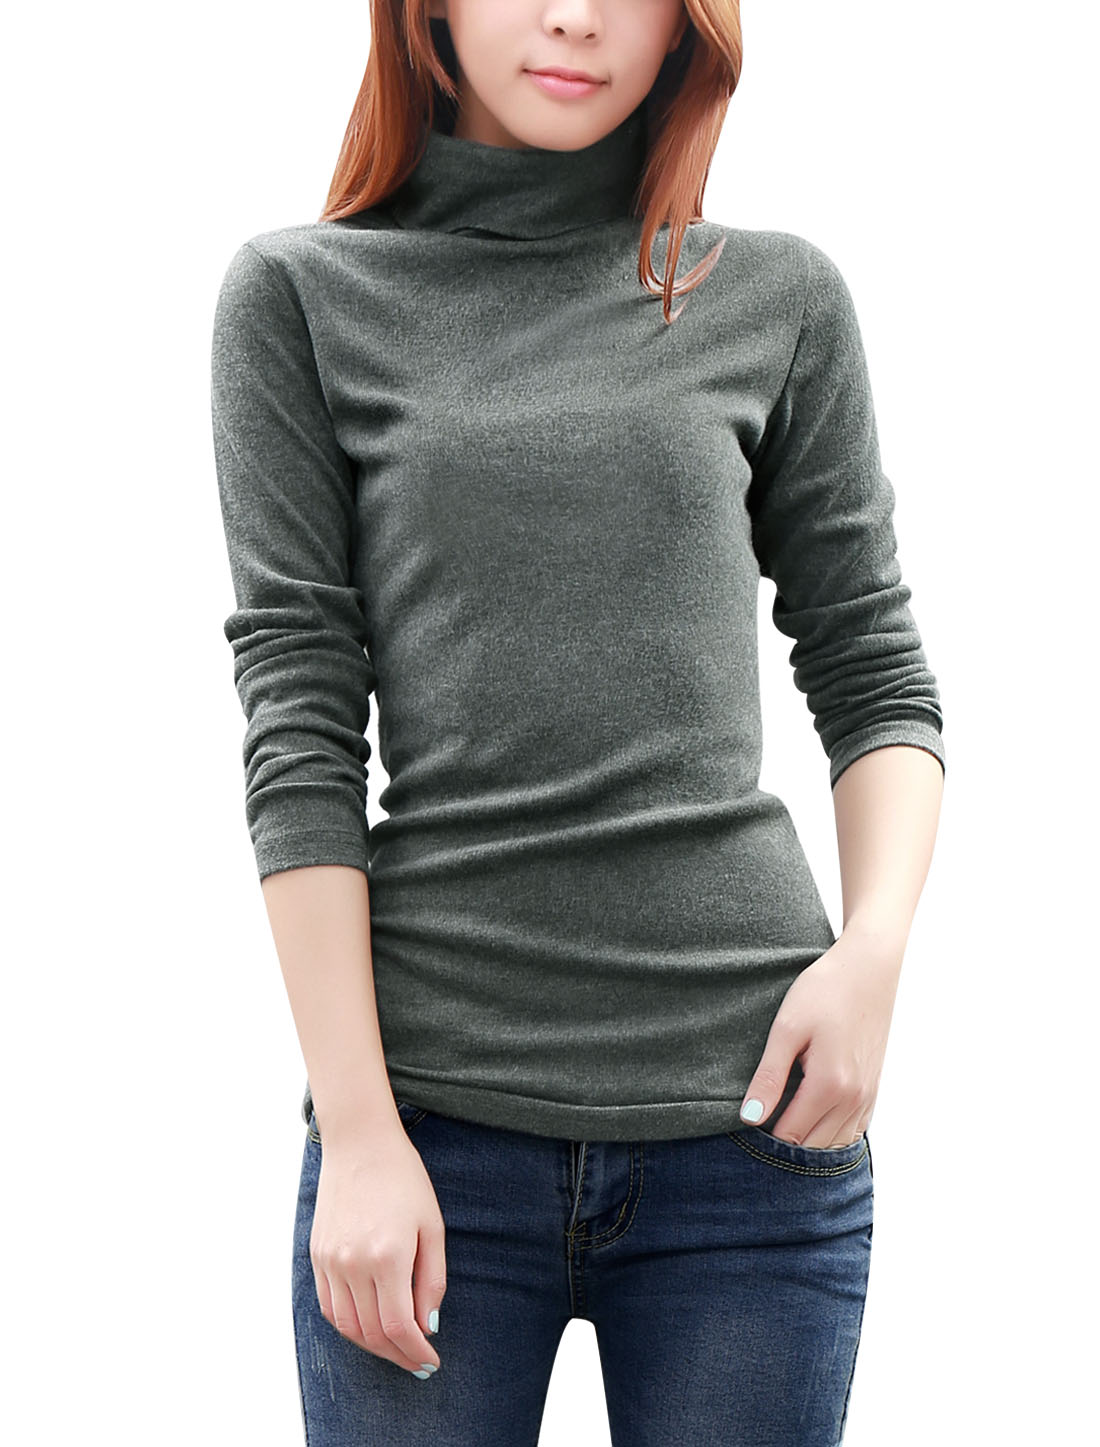 Lady Turtle Neck Solid Color Straight Cutting Soft Knit Top Dark Gray XL